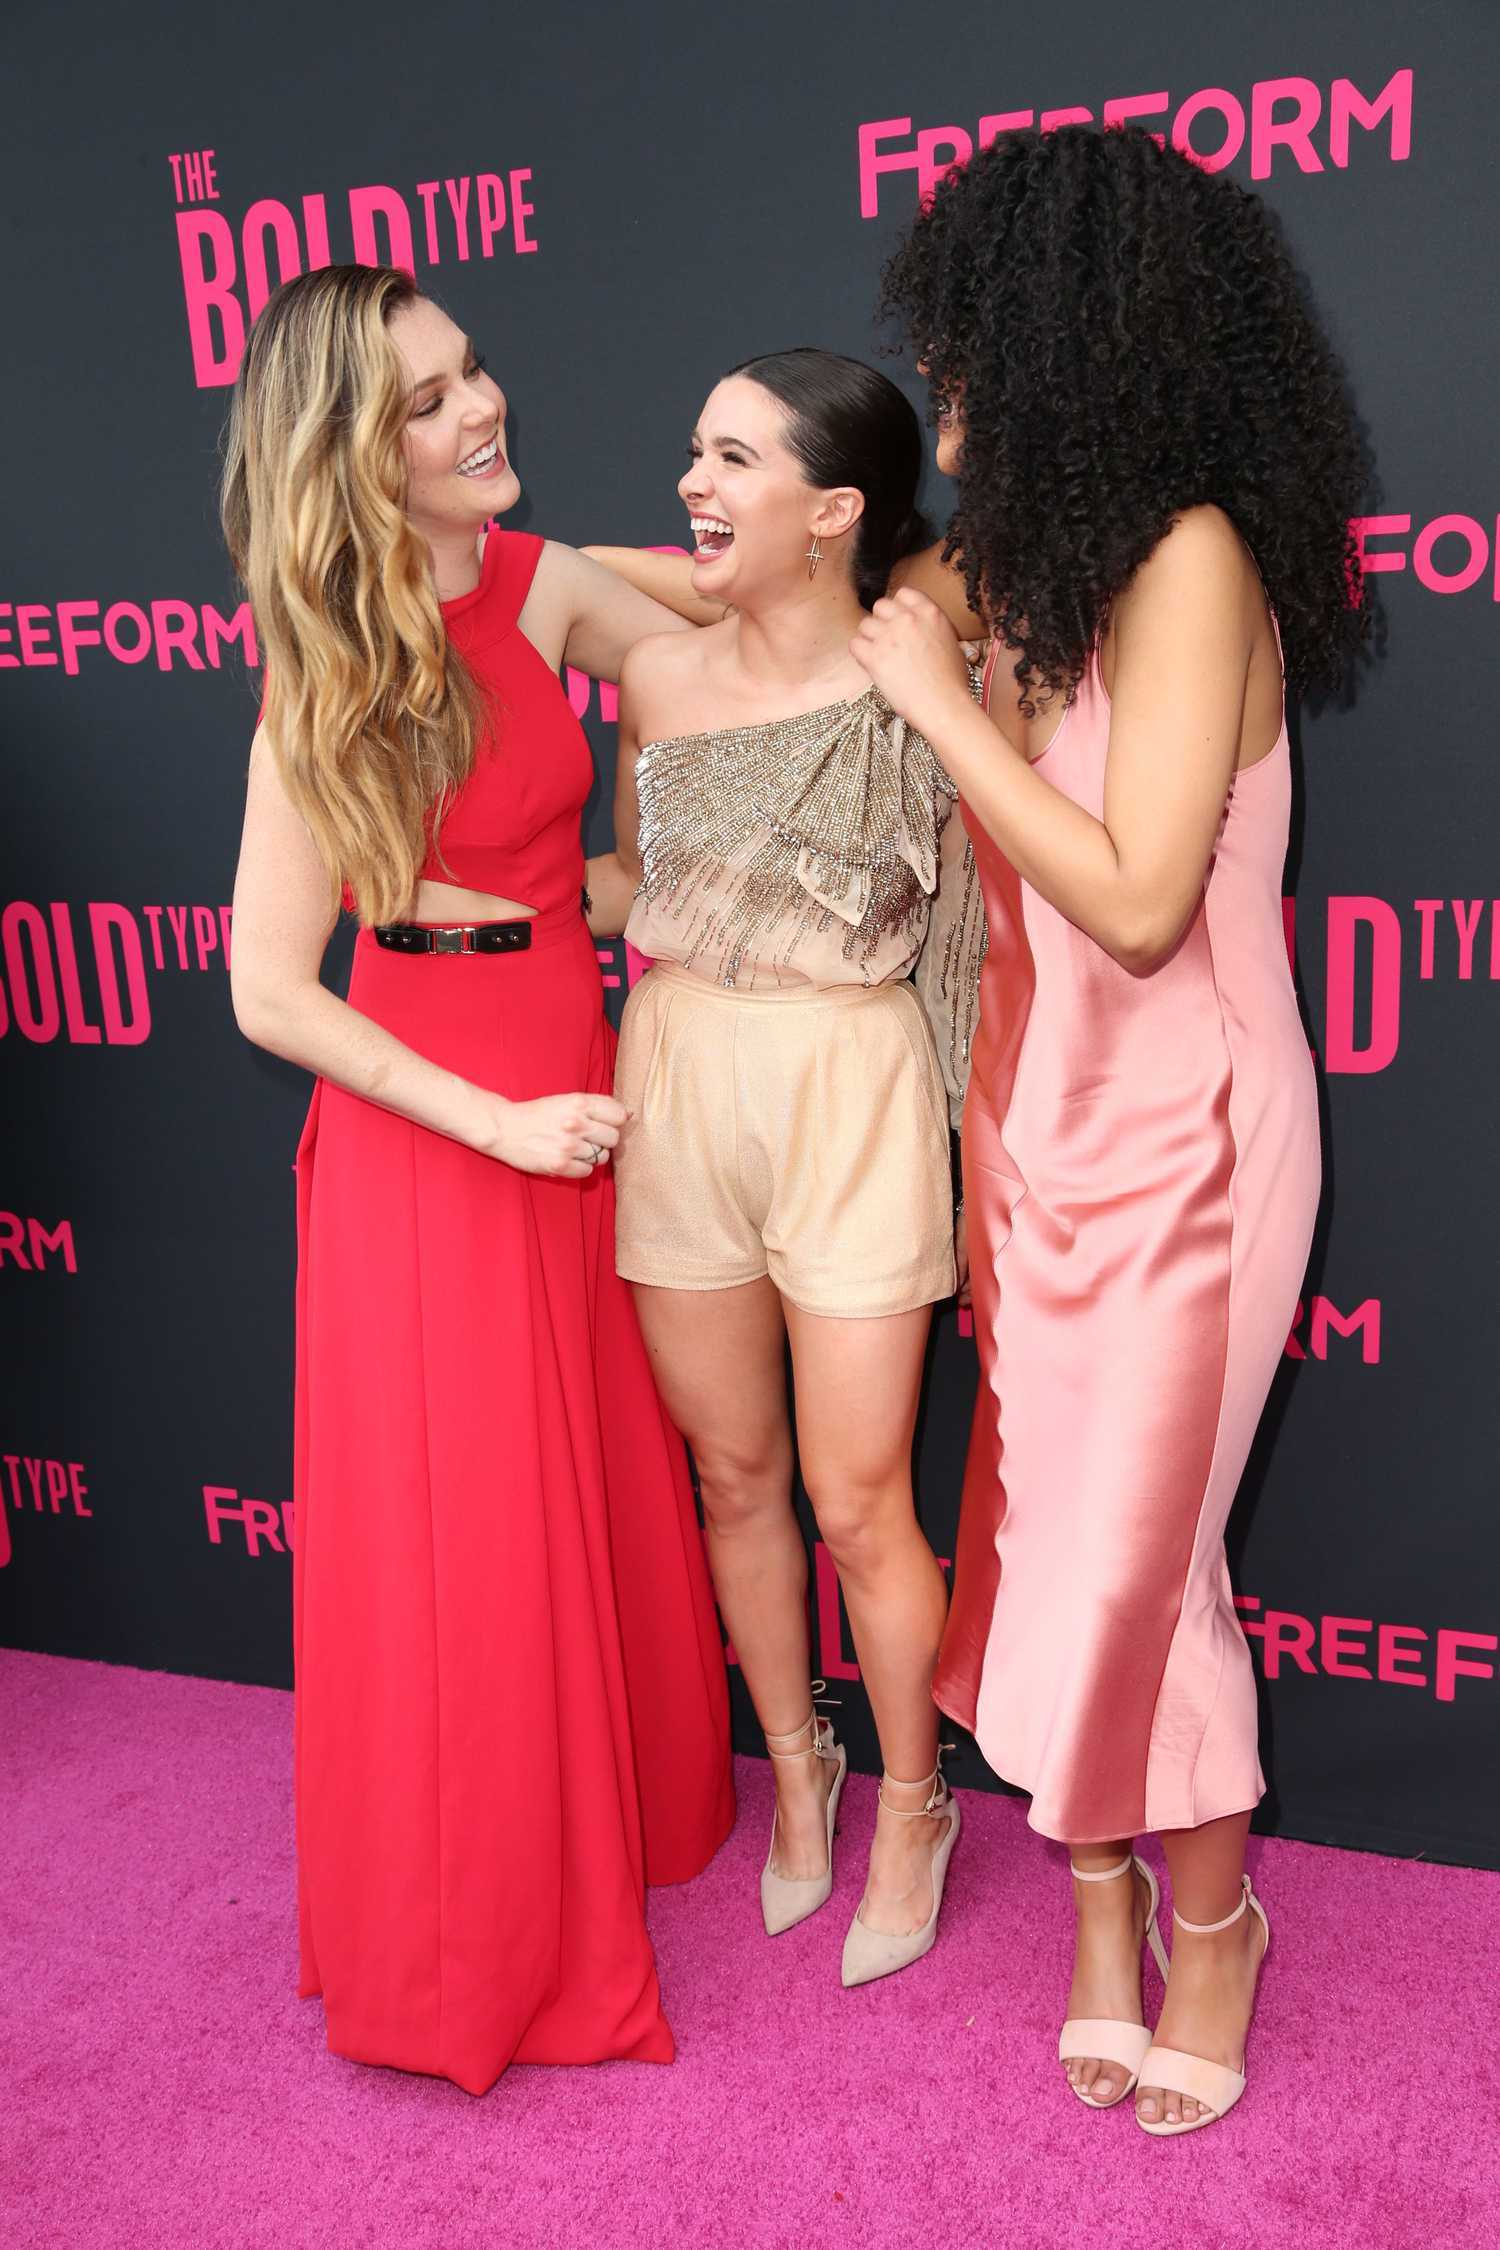 katie stevens at the bold type tv show premiere in new york celeb donut. Black Bedroom Furniture Sets. Home Design Ideas